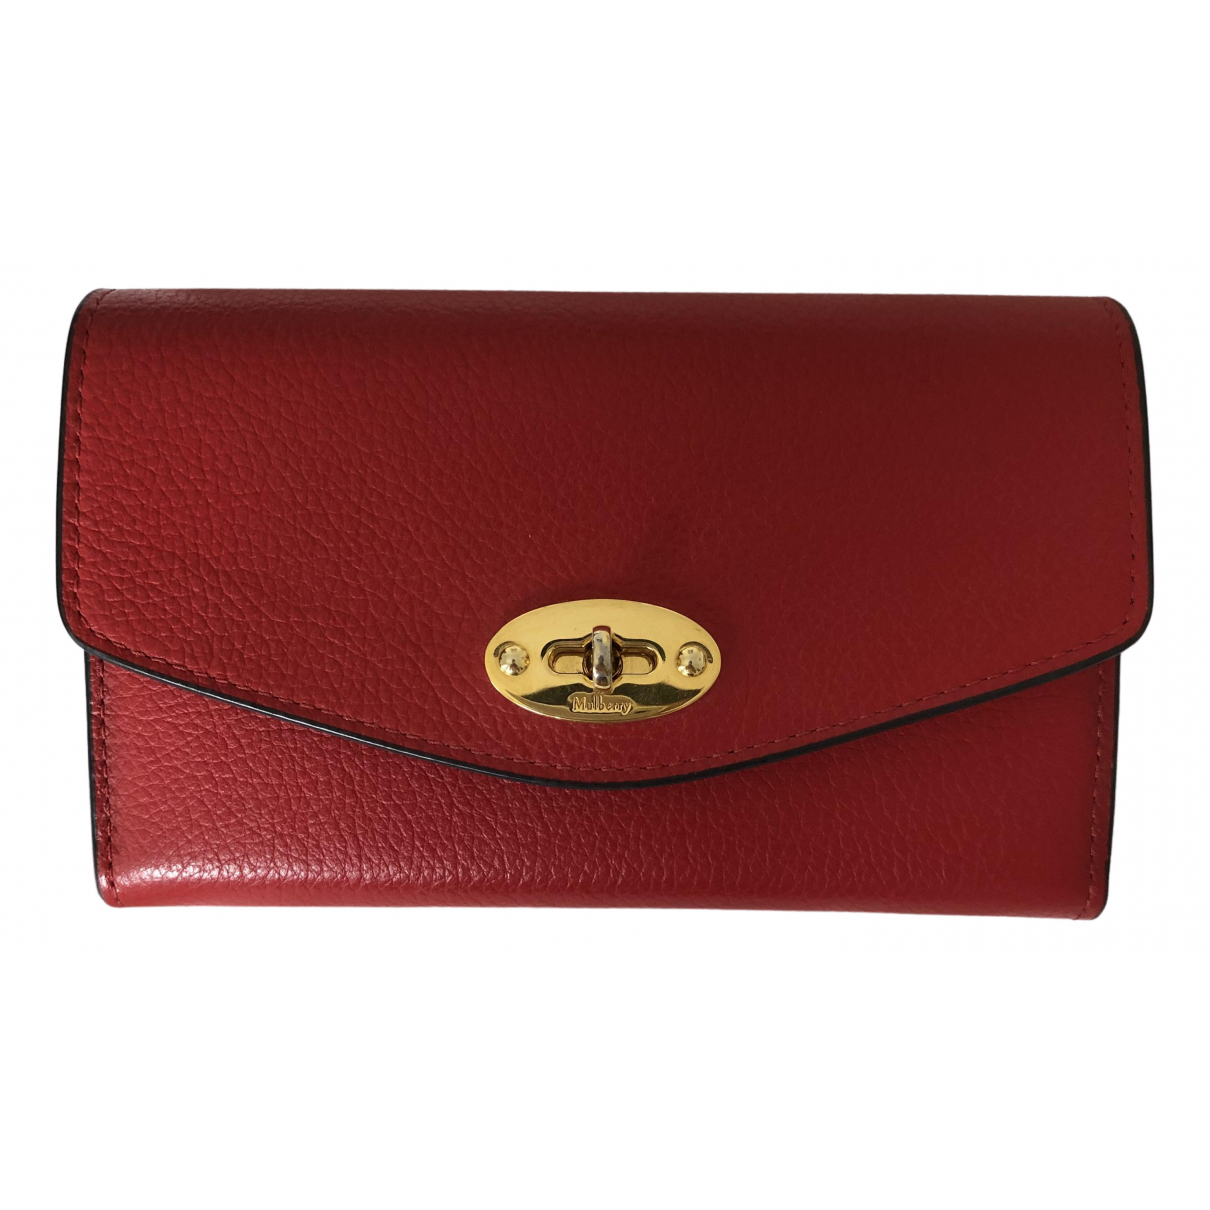 Mulberry \N Red Leather wallet for Women \N